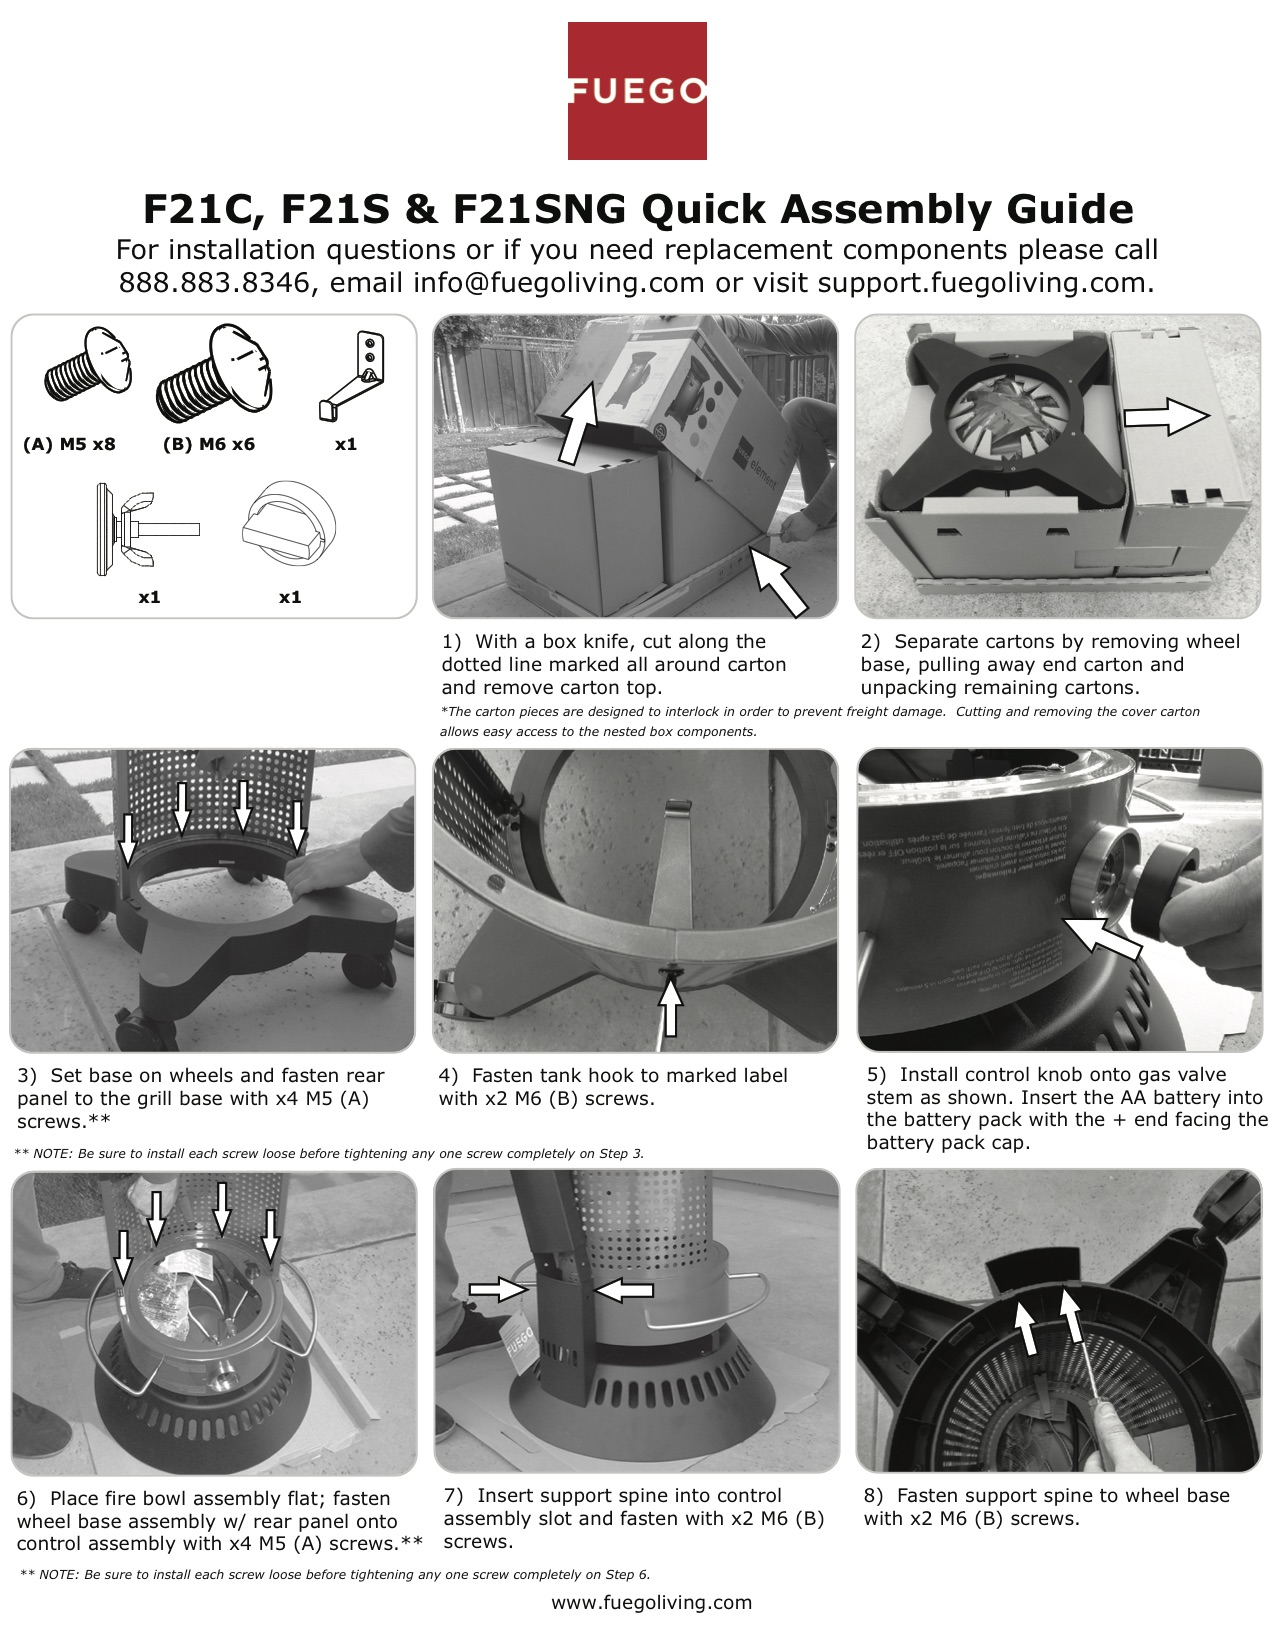 Quick_Assembly_Guide_F21C_F21S_F21SNG.jpg